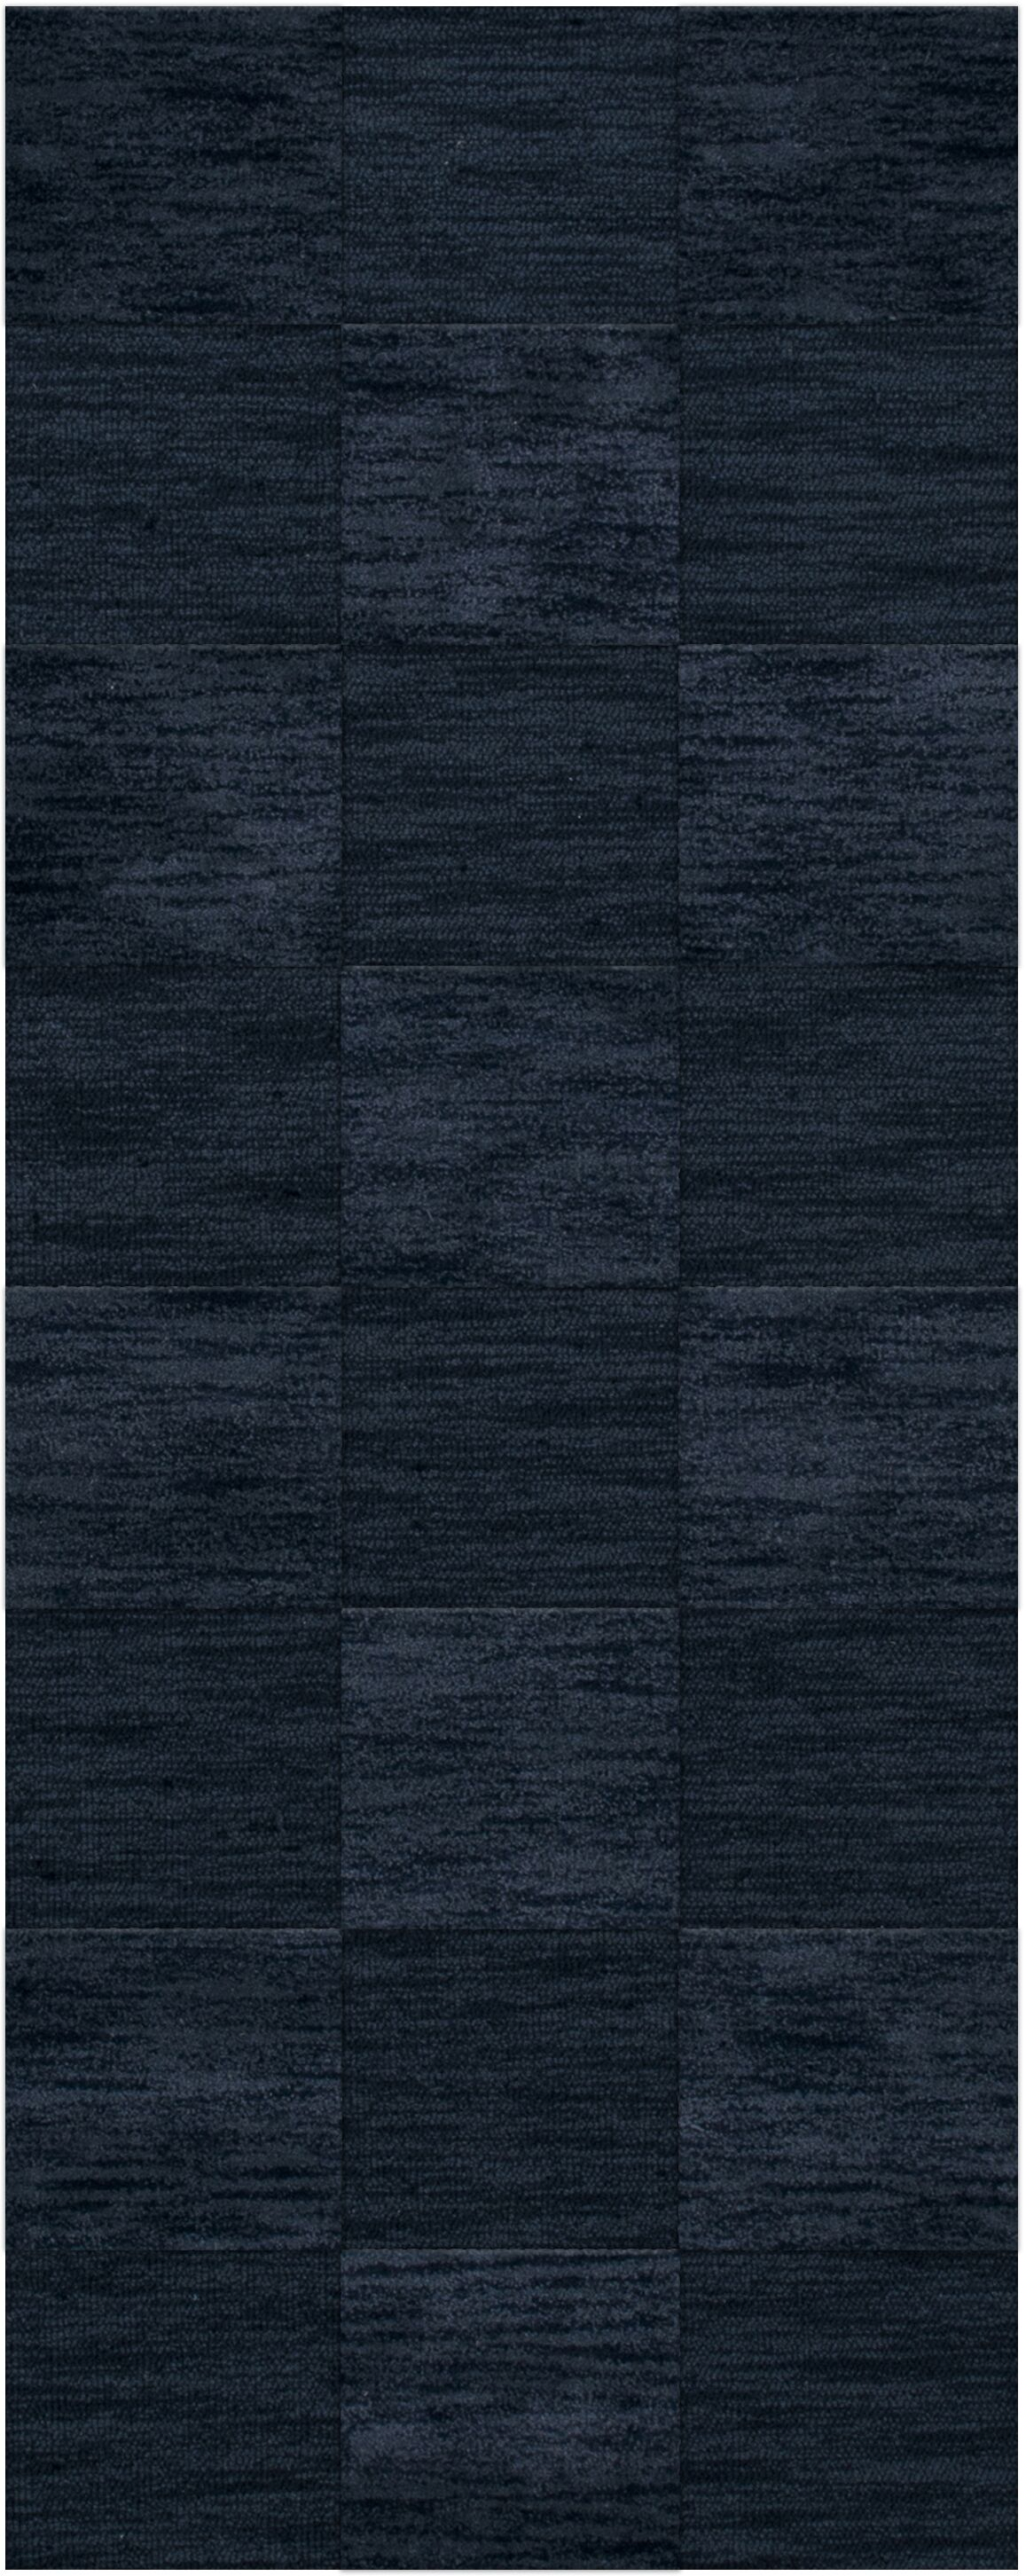 Dover Tufted Wool Navy Area Rug Rug Size: Runner 2'6